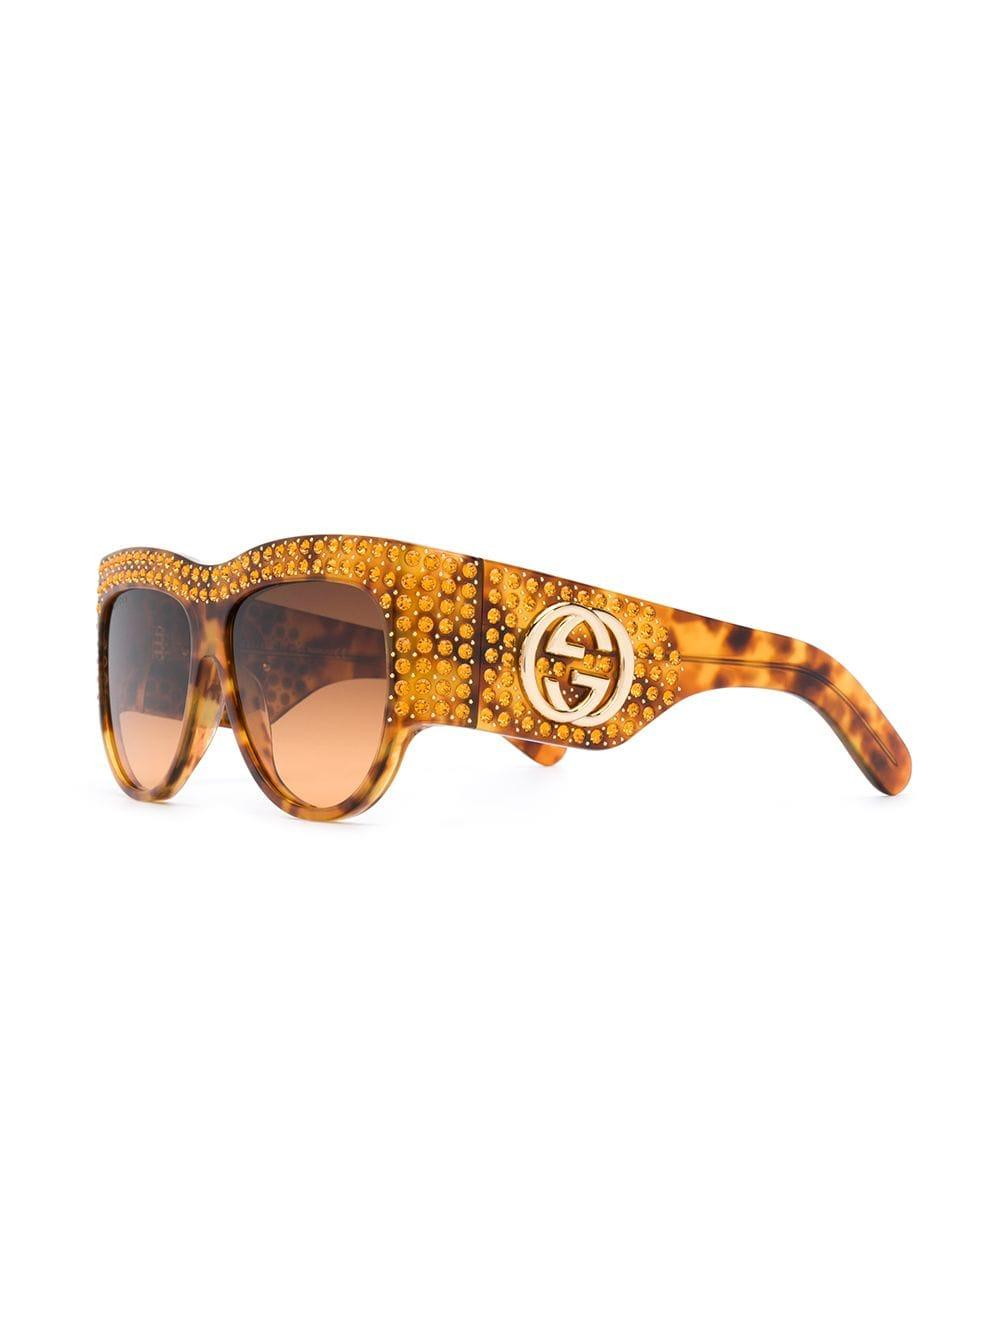 29d73cc3618 Gucci Gem Studded Sunglasses in Brown - Save 23% - Lyst